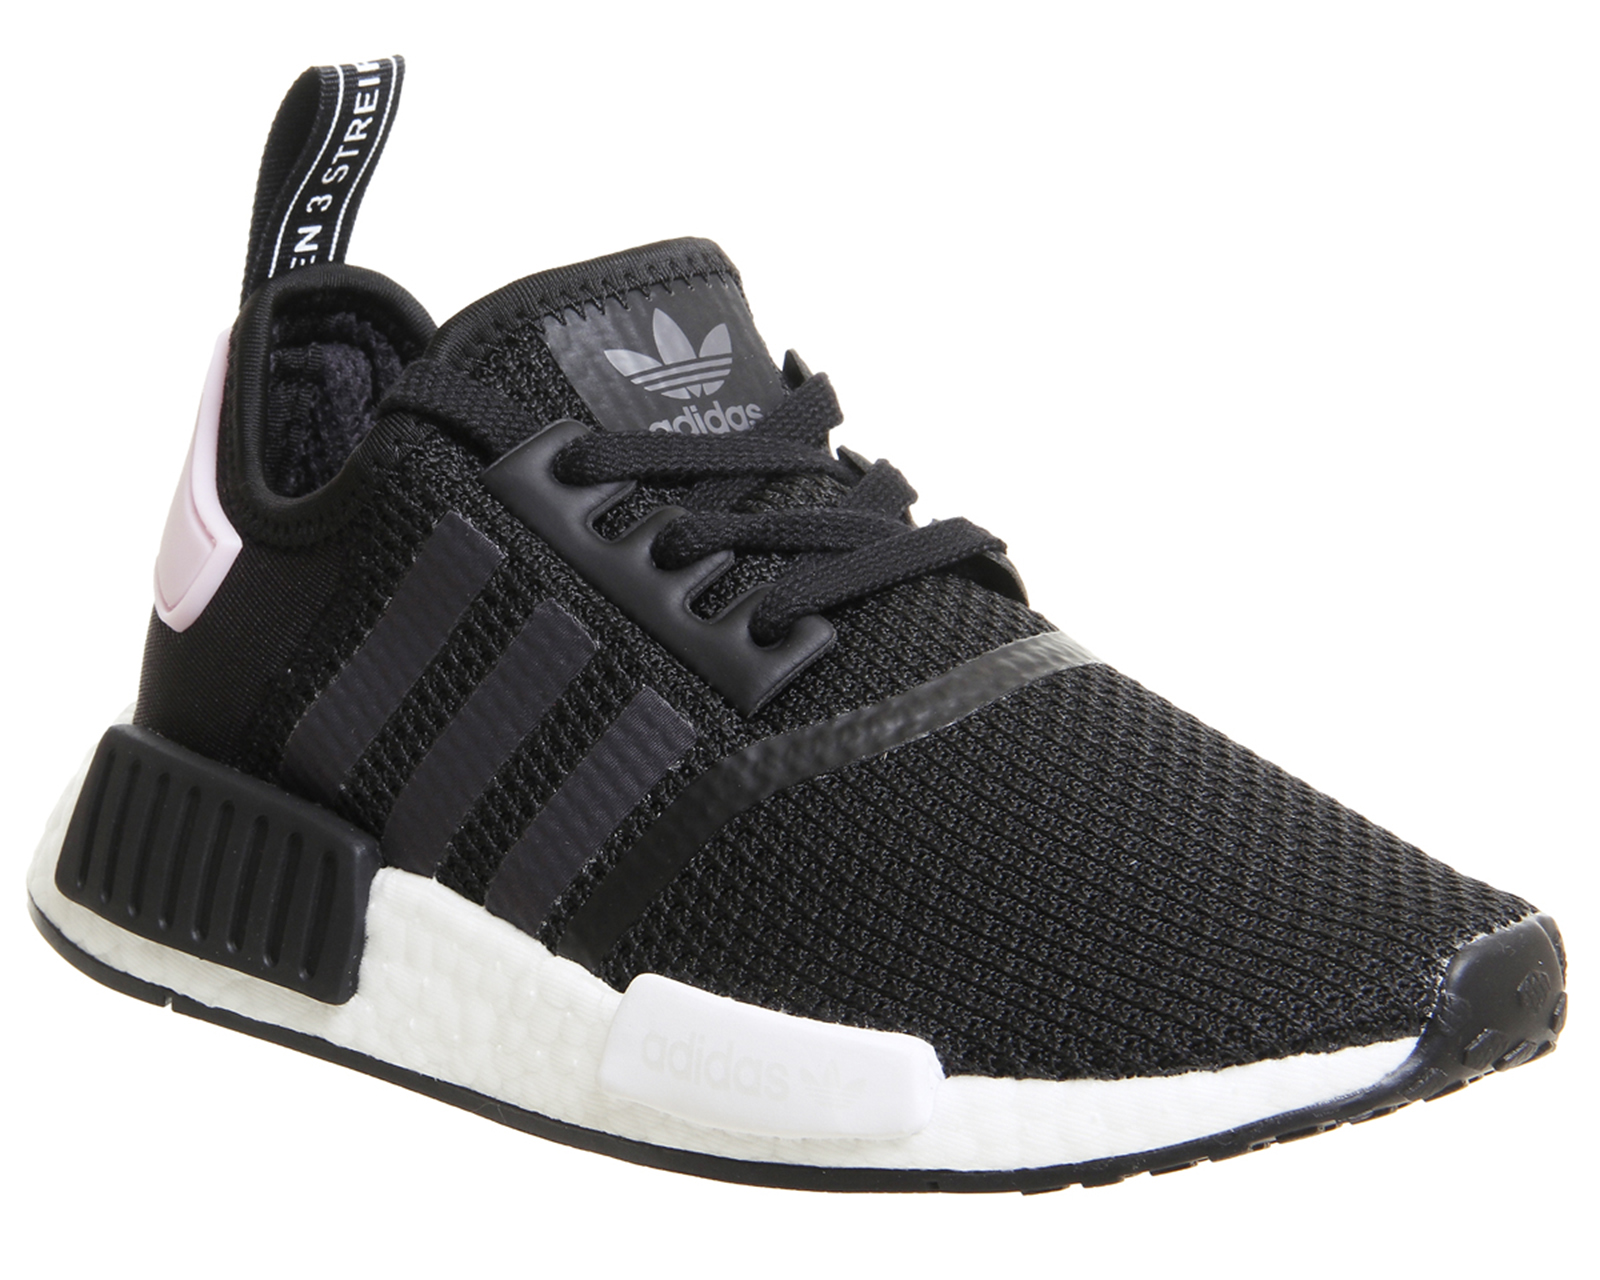 Sentinel Womens Adidas Nmd R1 Trainers Core Black White Clear Pink Trainers  Shoes 4646bd4441